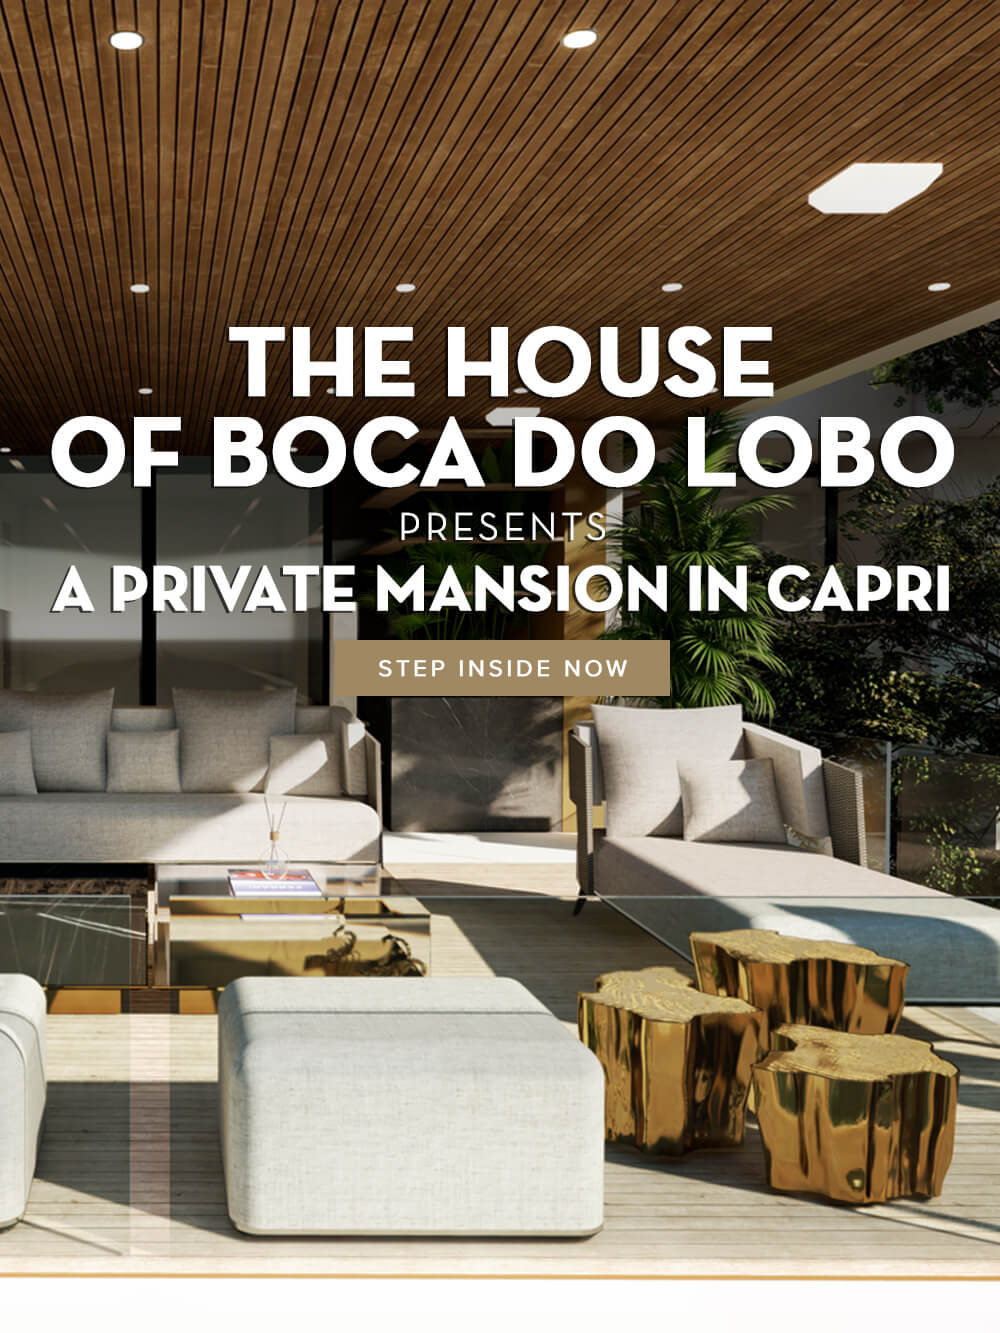 The House of Boca do Lobo presents a Private Mansion in Capri - Step Inside Now